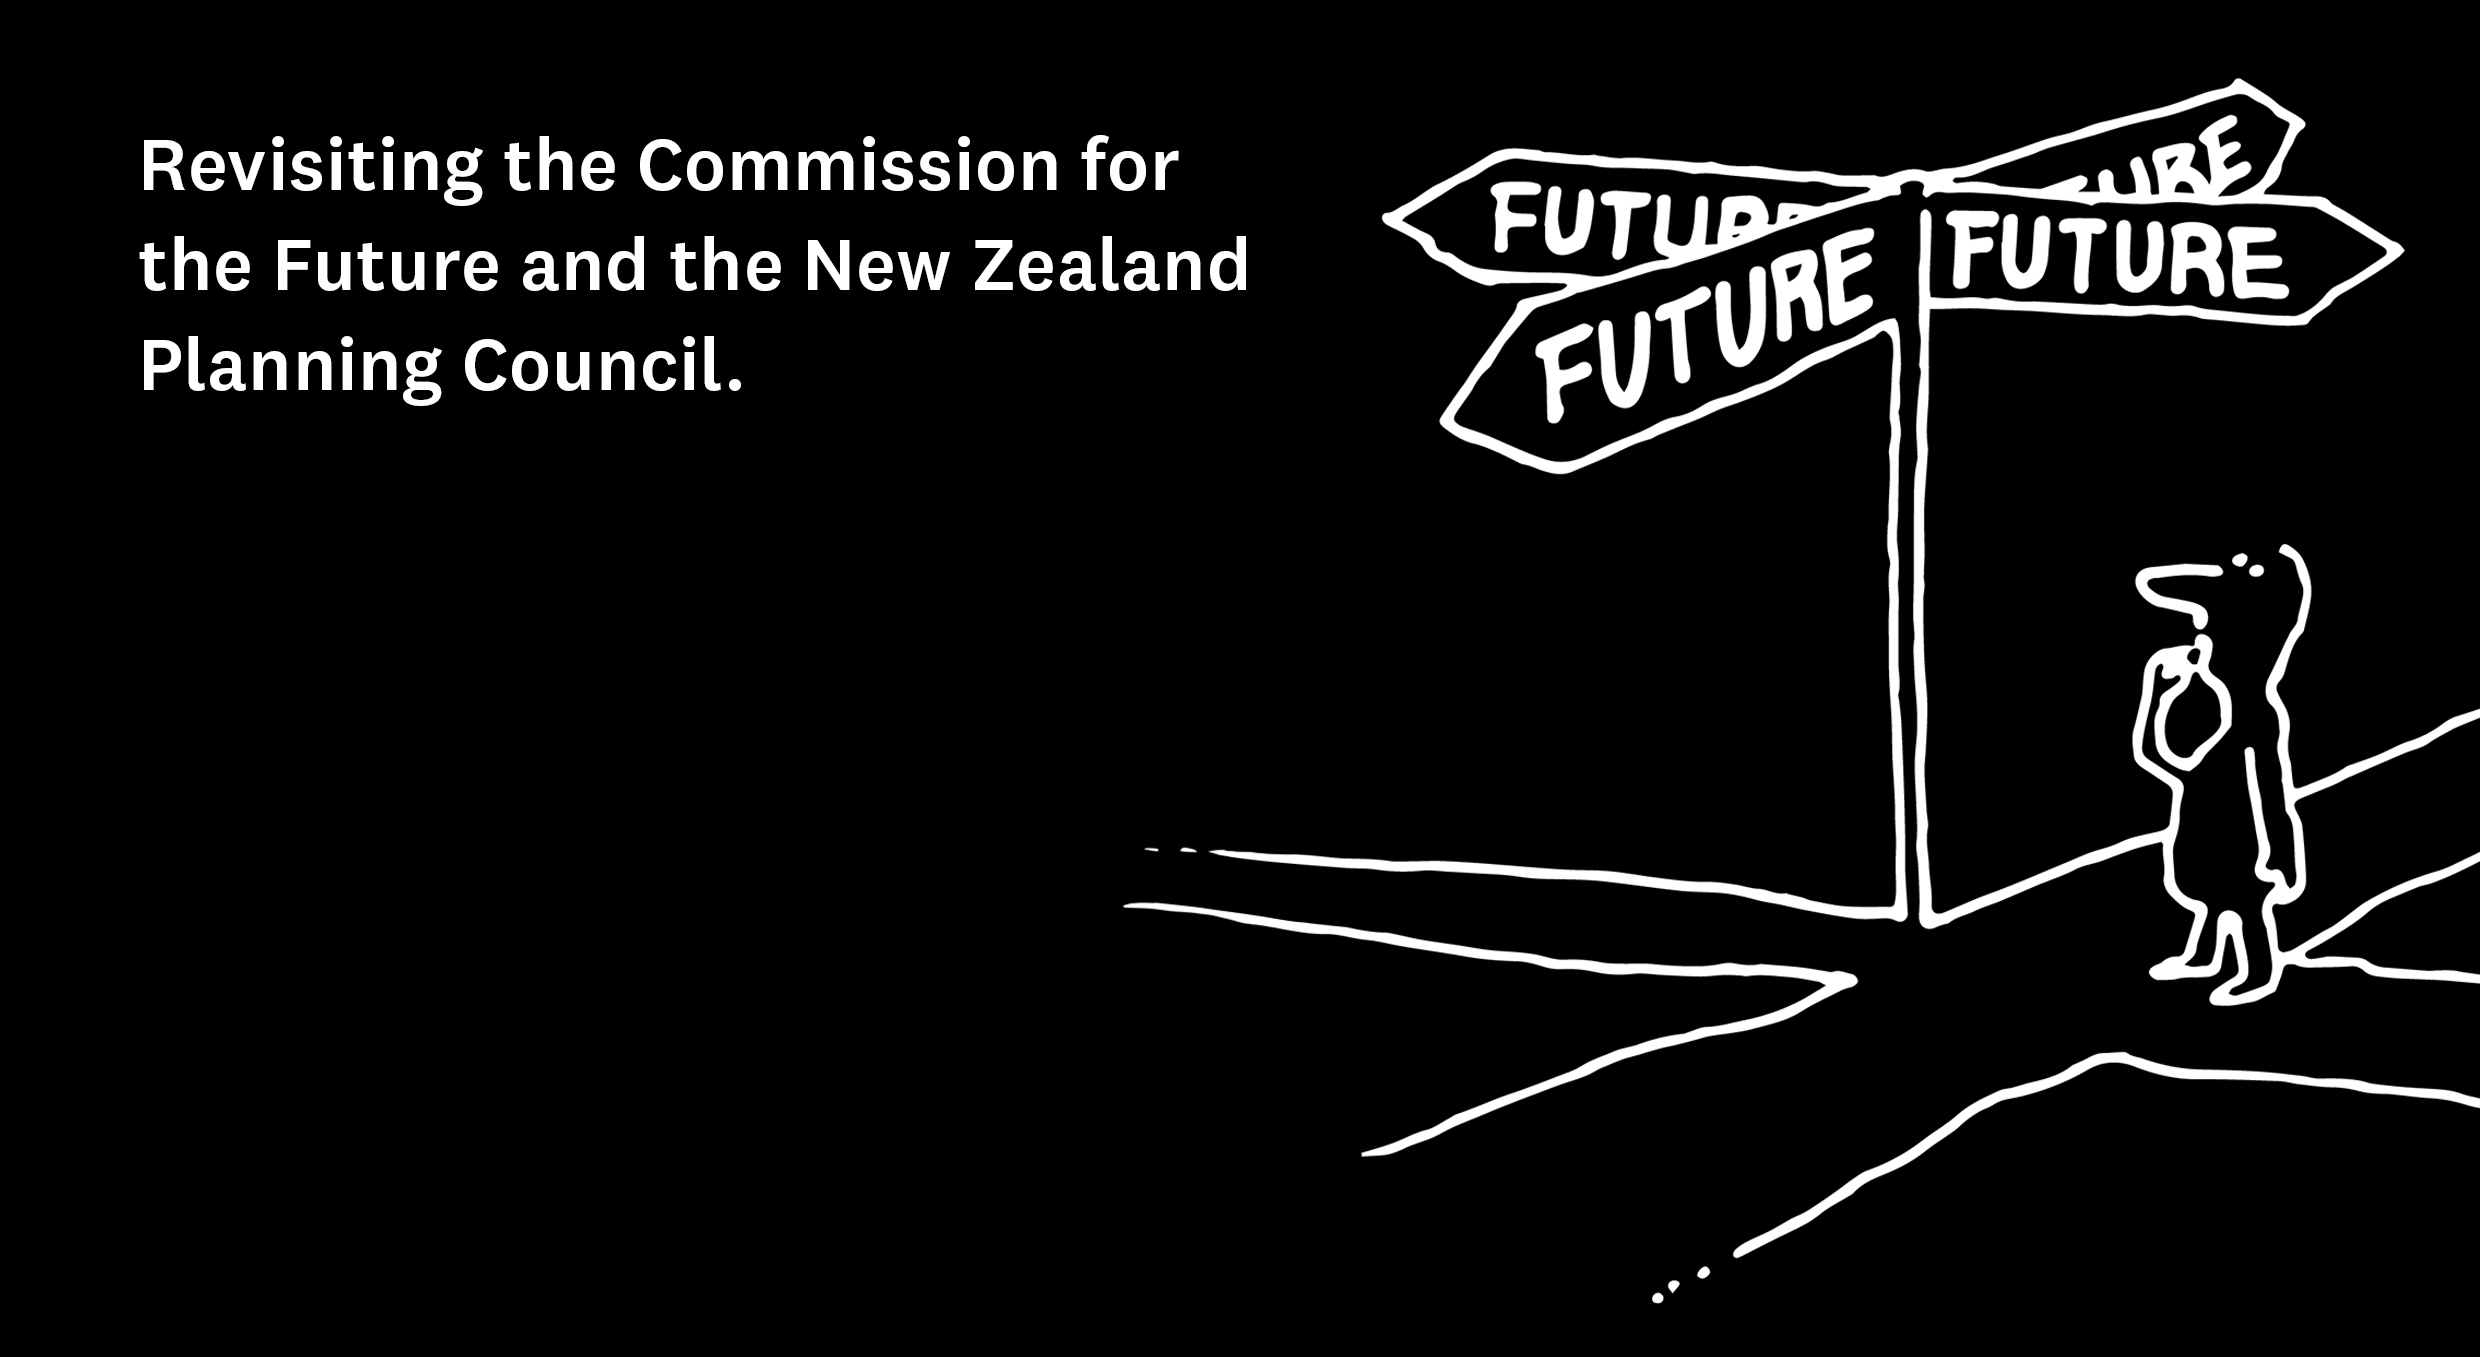 Revisiting the Commission for the Future and the New Zealand Planning Council. logo